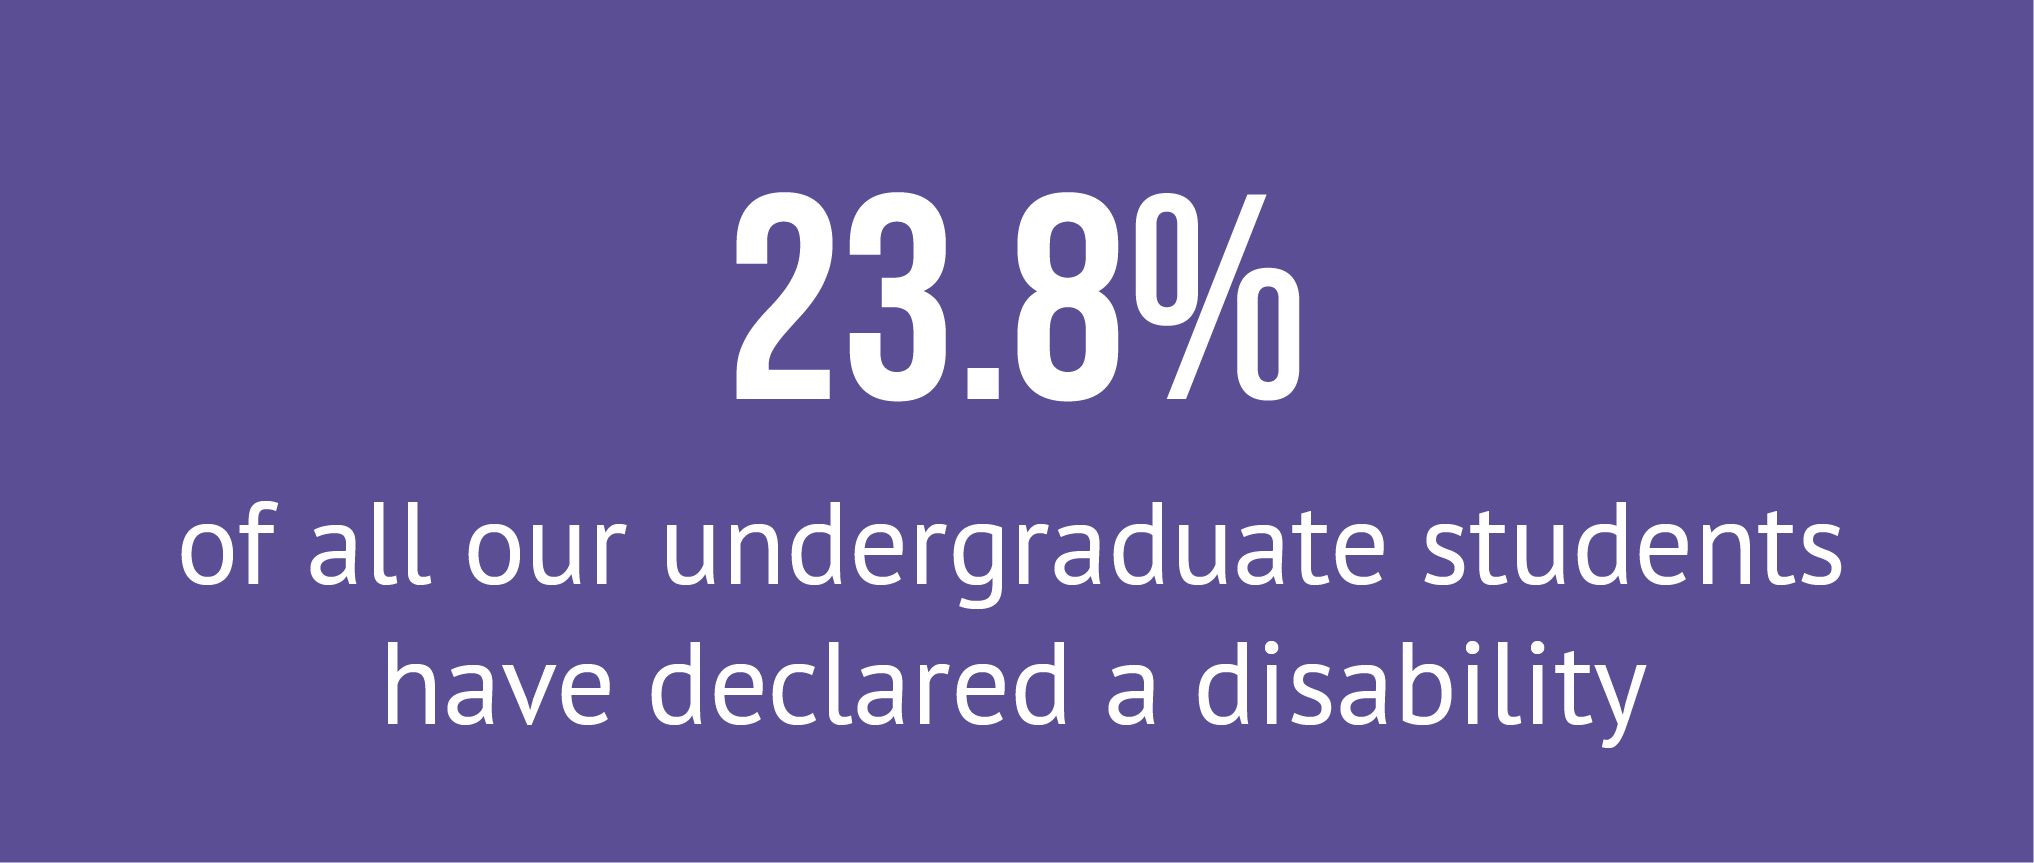 23.8% of our undergraduate students have declared a disability